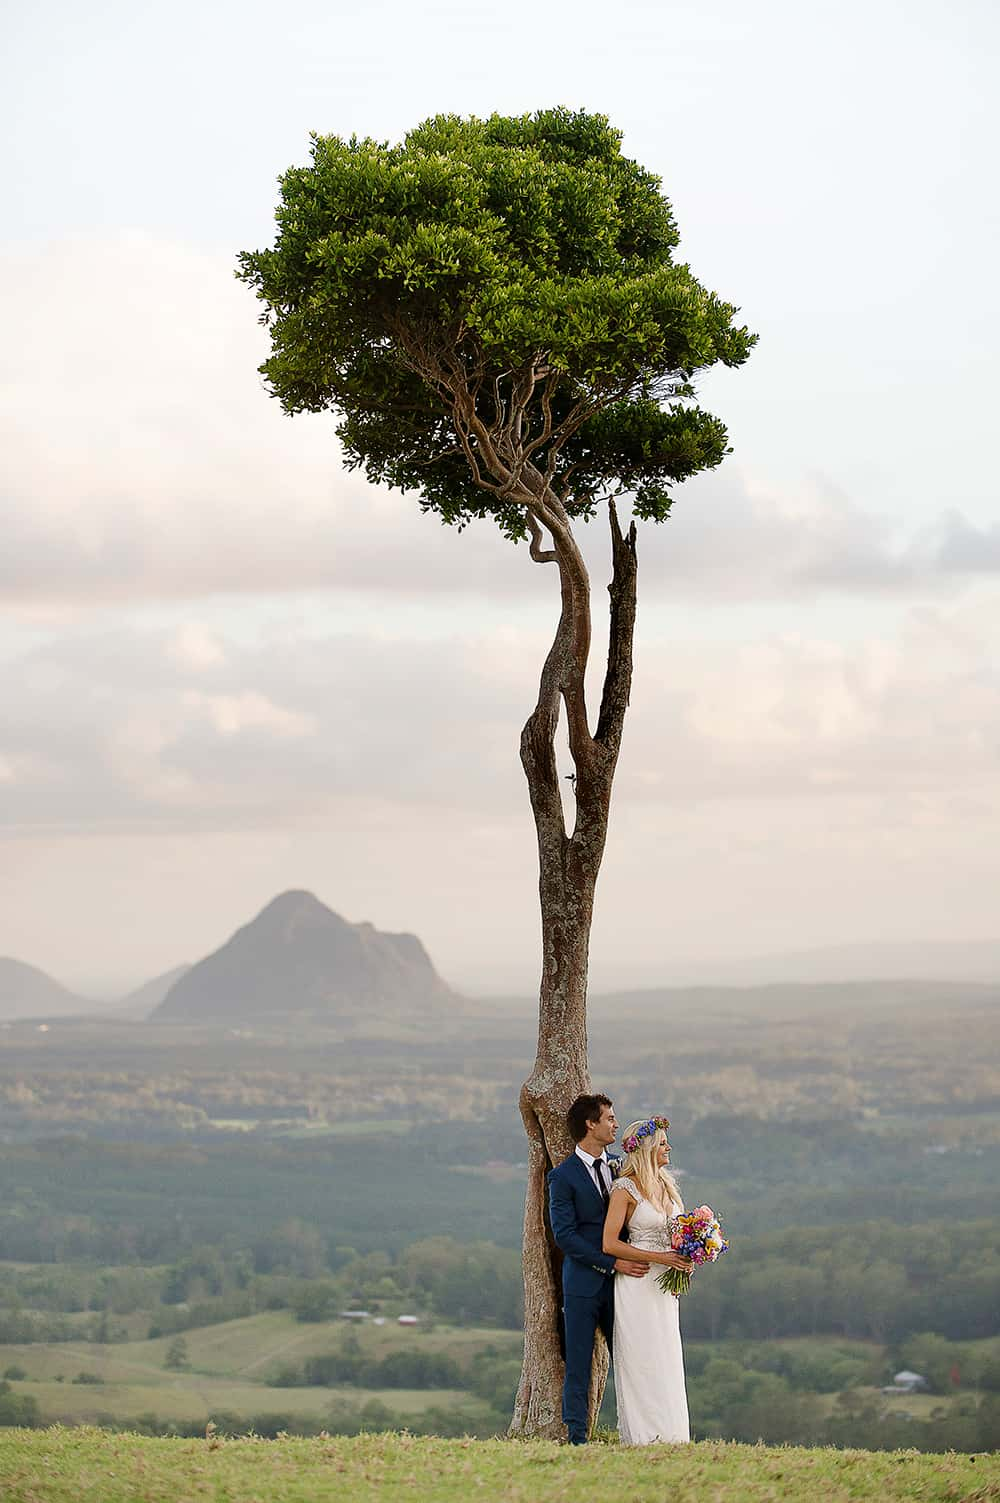 Bride and groom on a hill photographed by Christopher Thomas Photography.